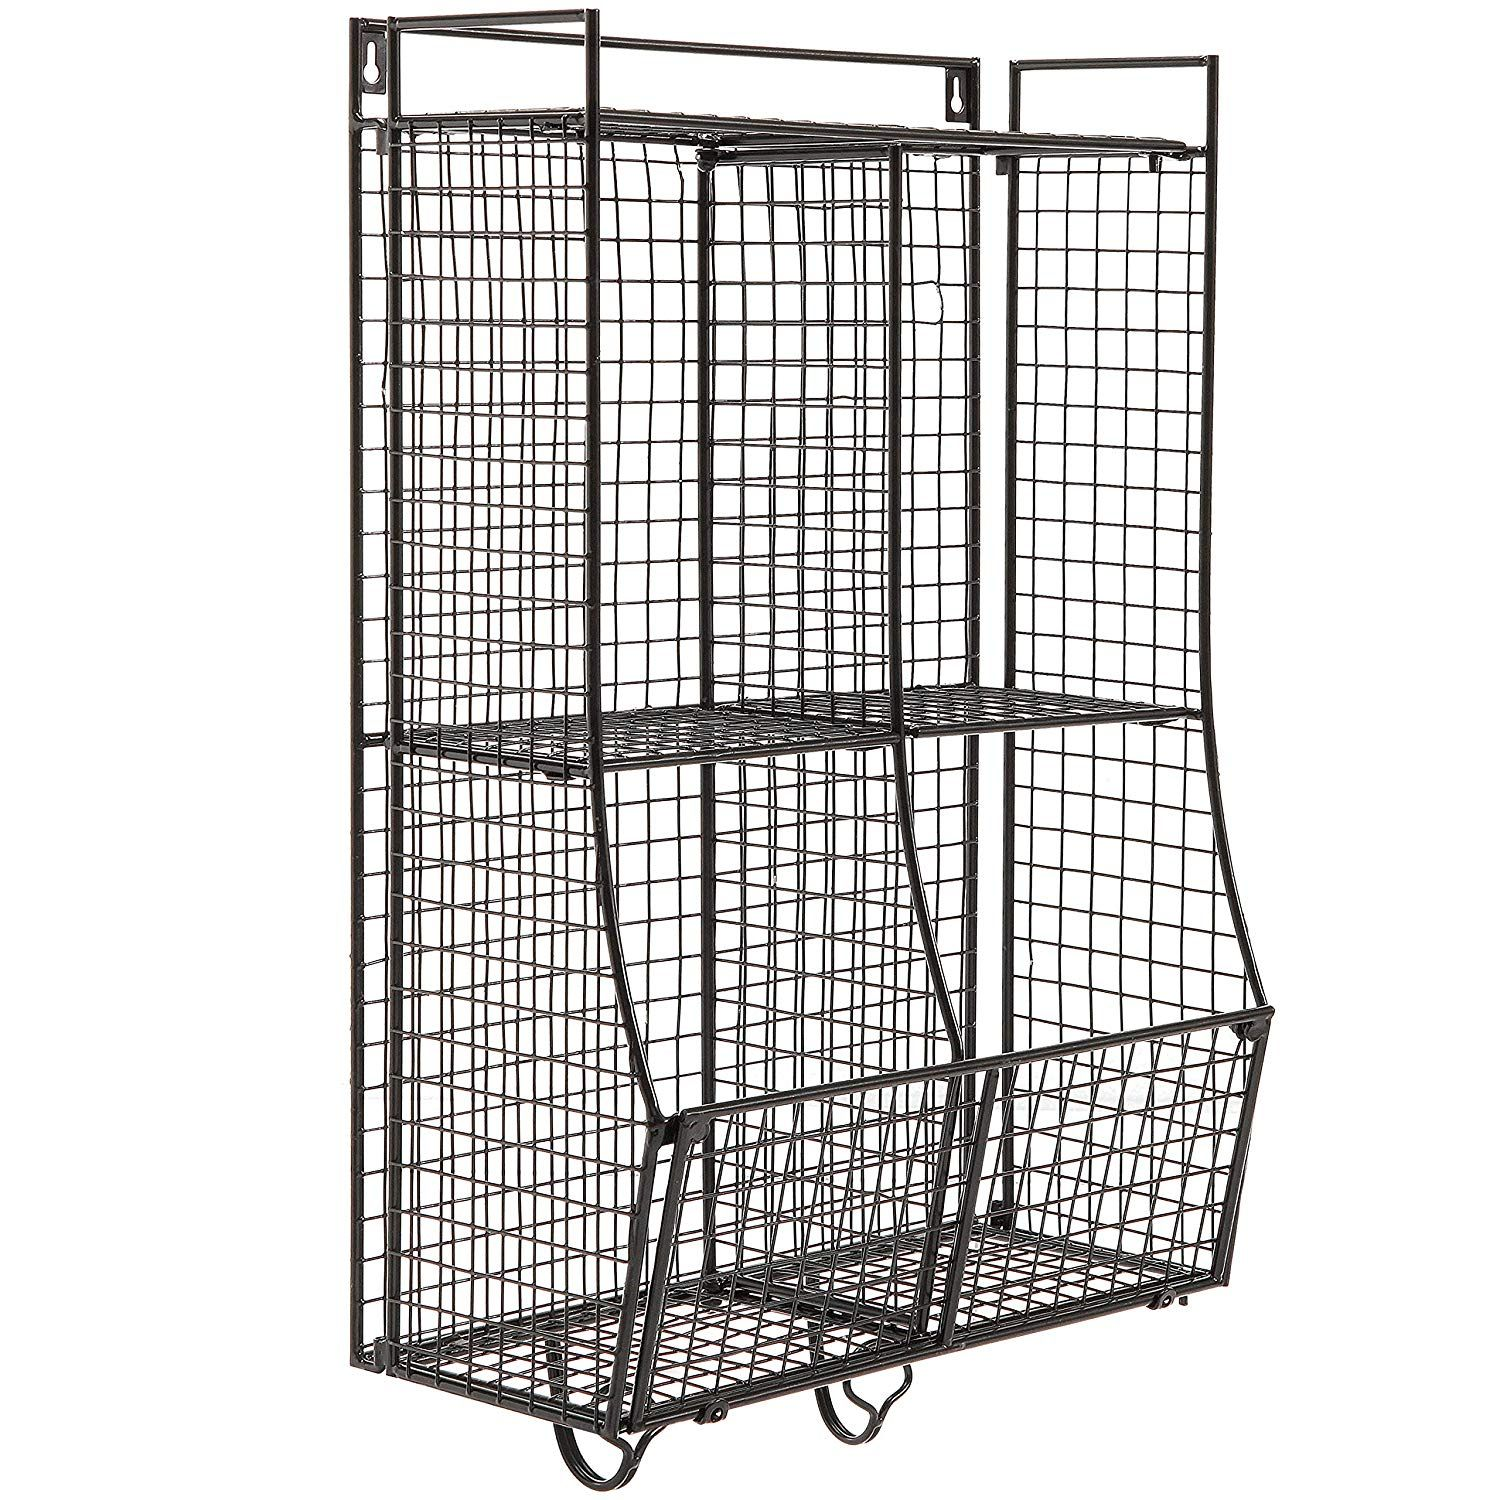 Wall Mounted Collapsible Black Metal Wire Mesh Storage Basket Shelf Organizer Rack W 2 Hanging Hooks Shelf Baskets Storage Metal Wall Basket Basket Shelves